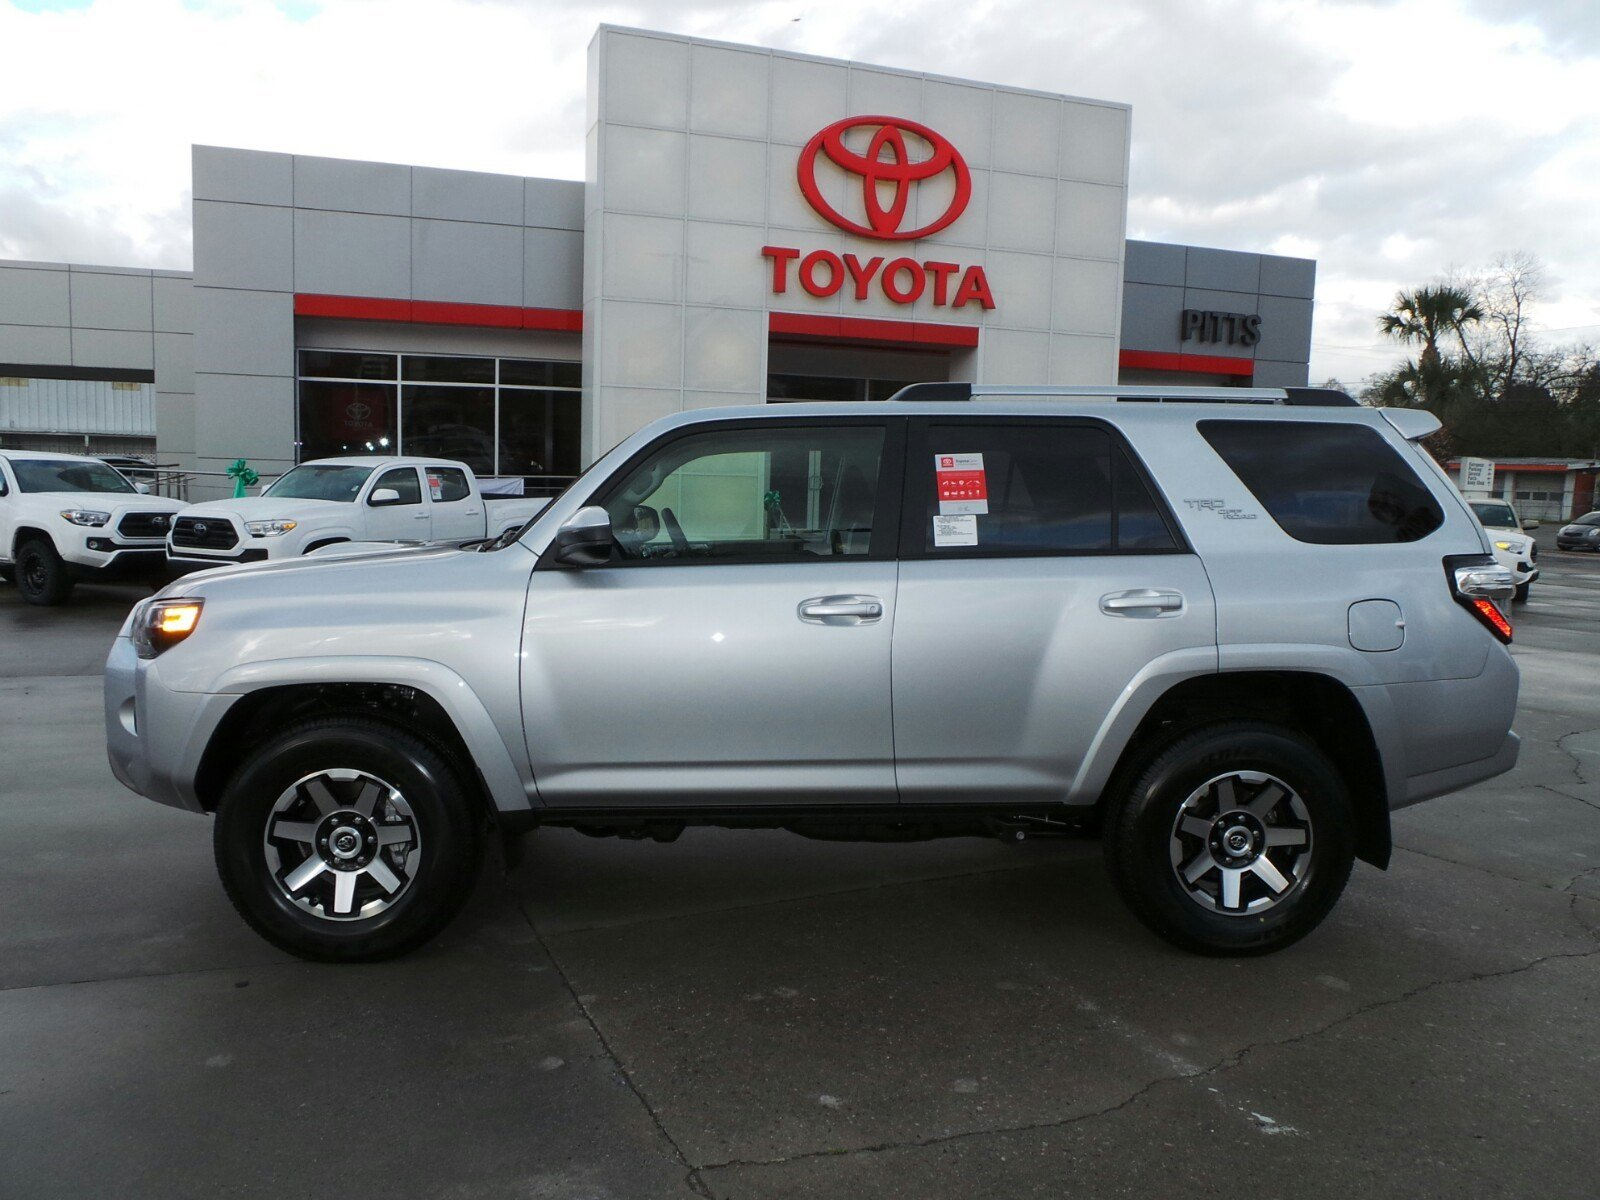 60b78566dafb8a4c7e6a482abd95f7d2 Great Description About Used toyota 4runner for Sale